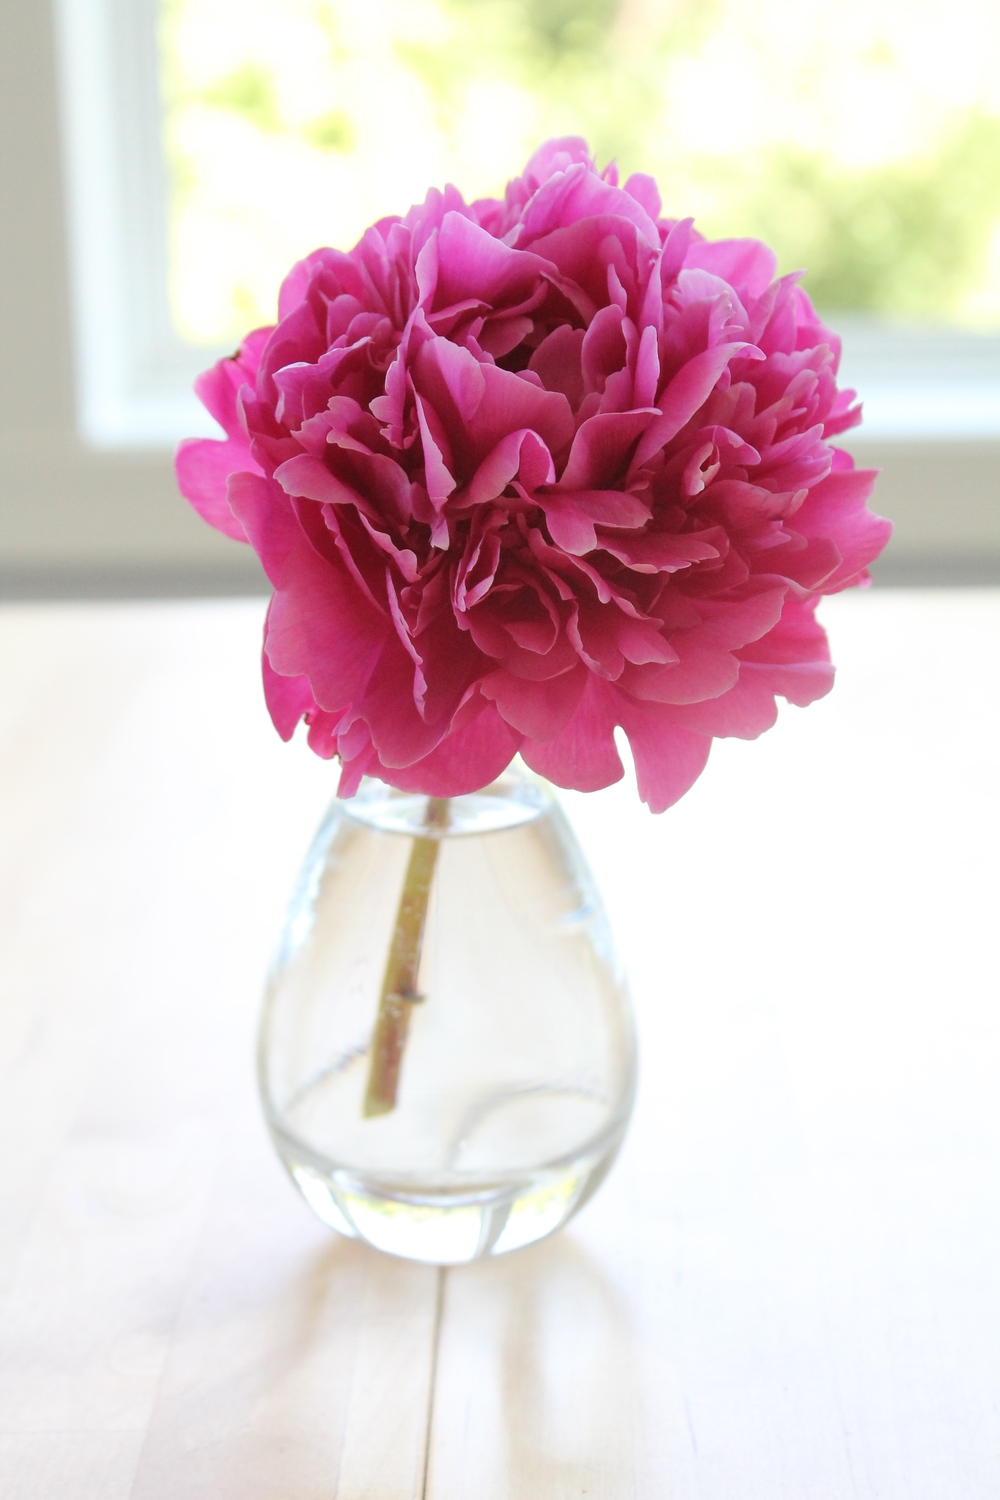 Single peony in a bud vase.